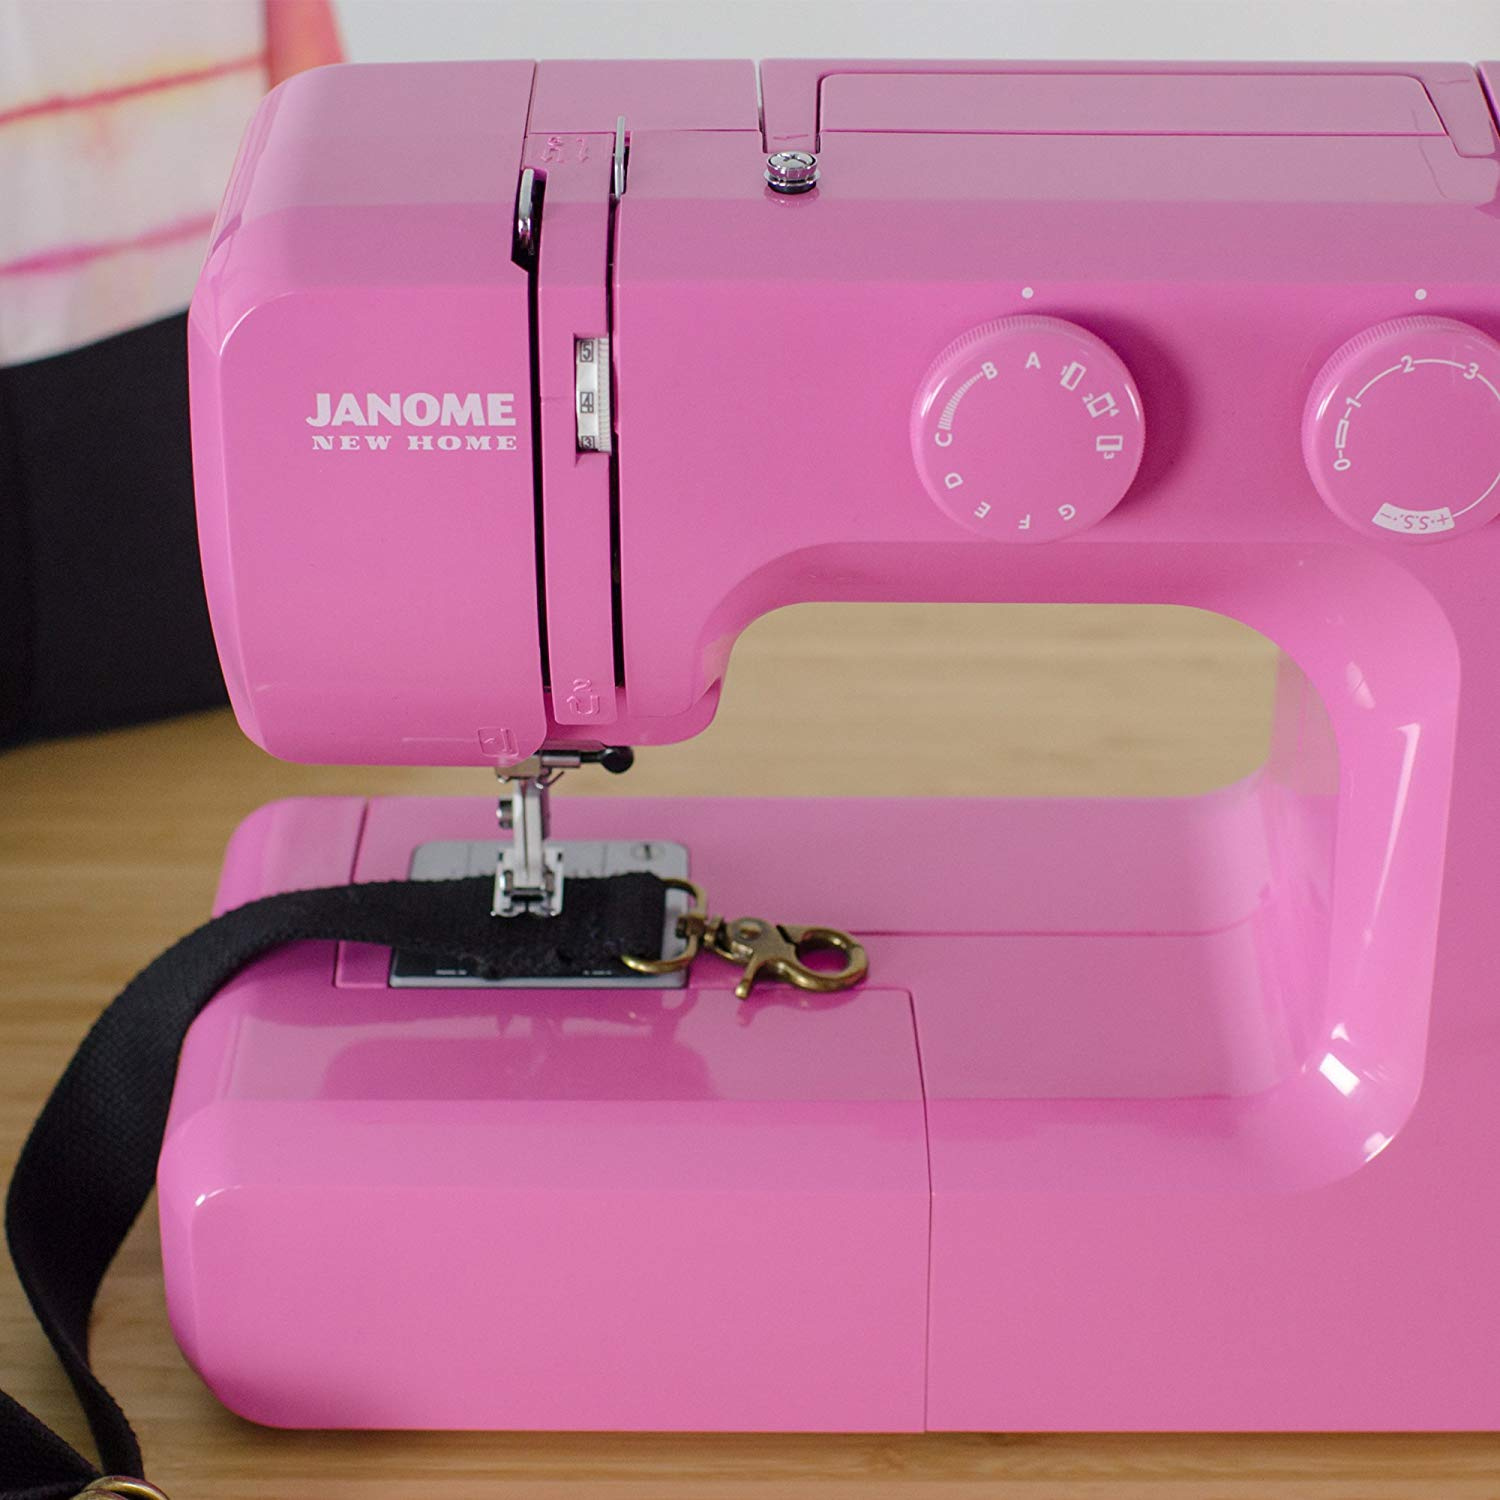 Janome Border Guide Sewing Machine Foot